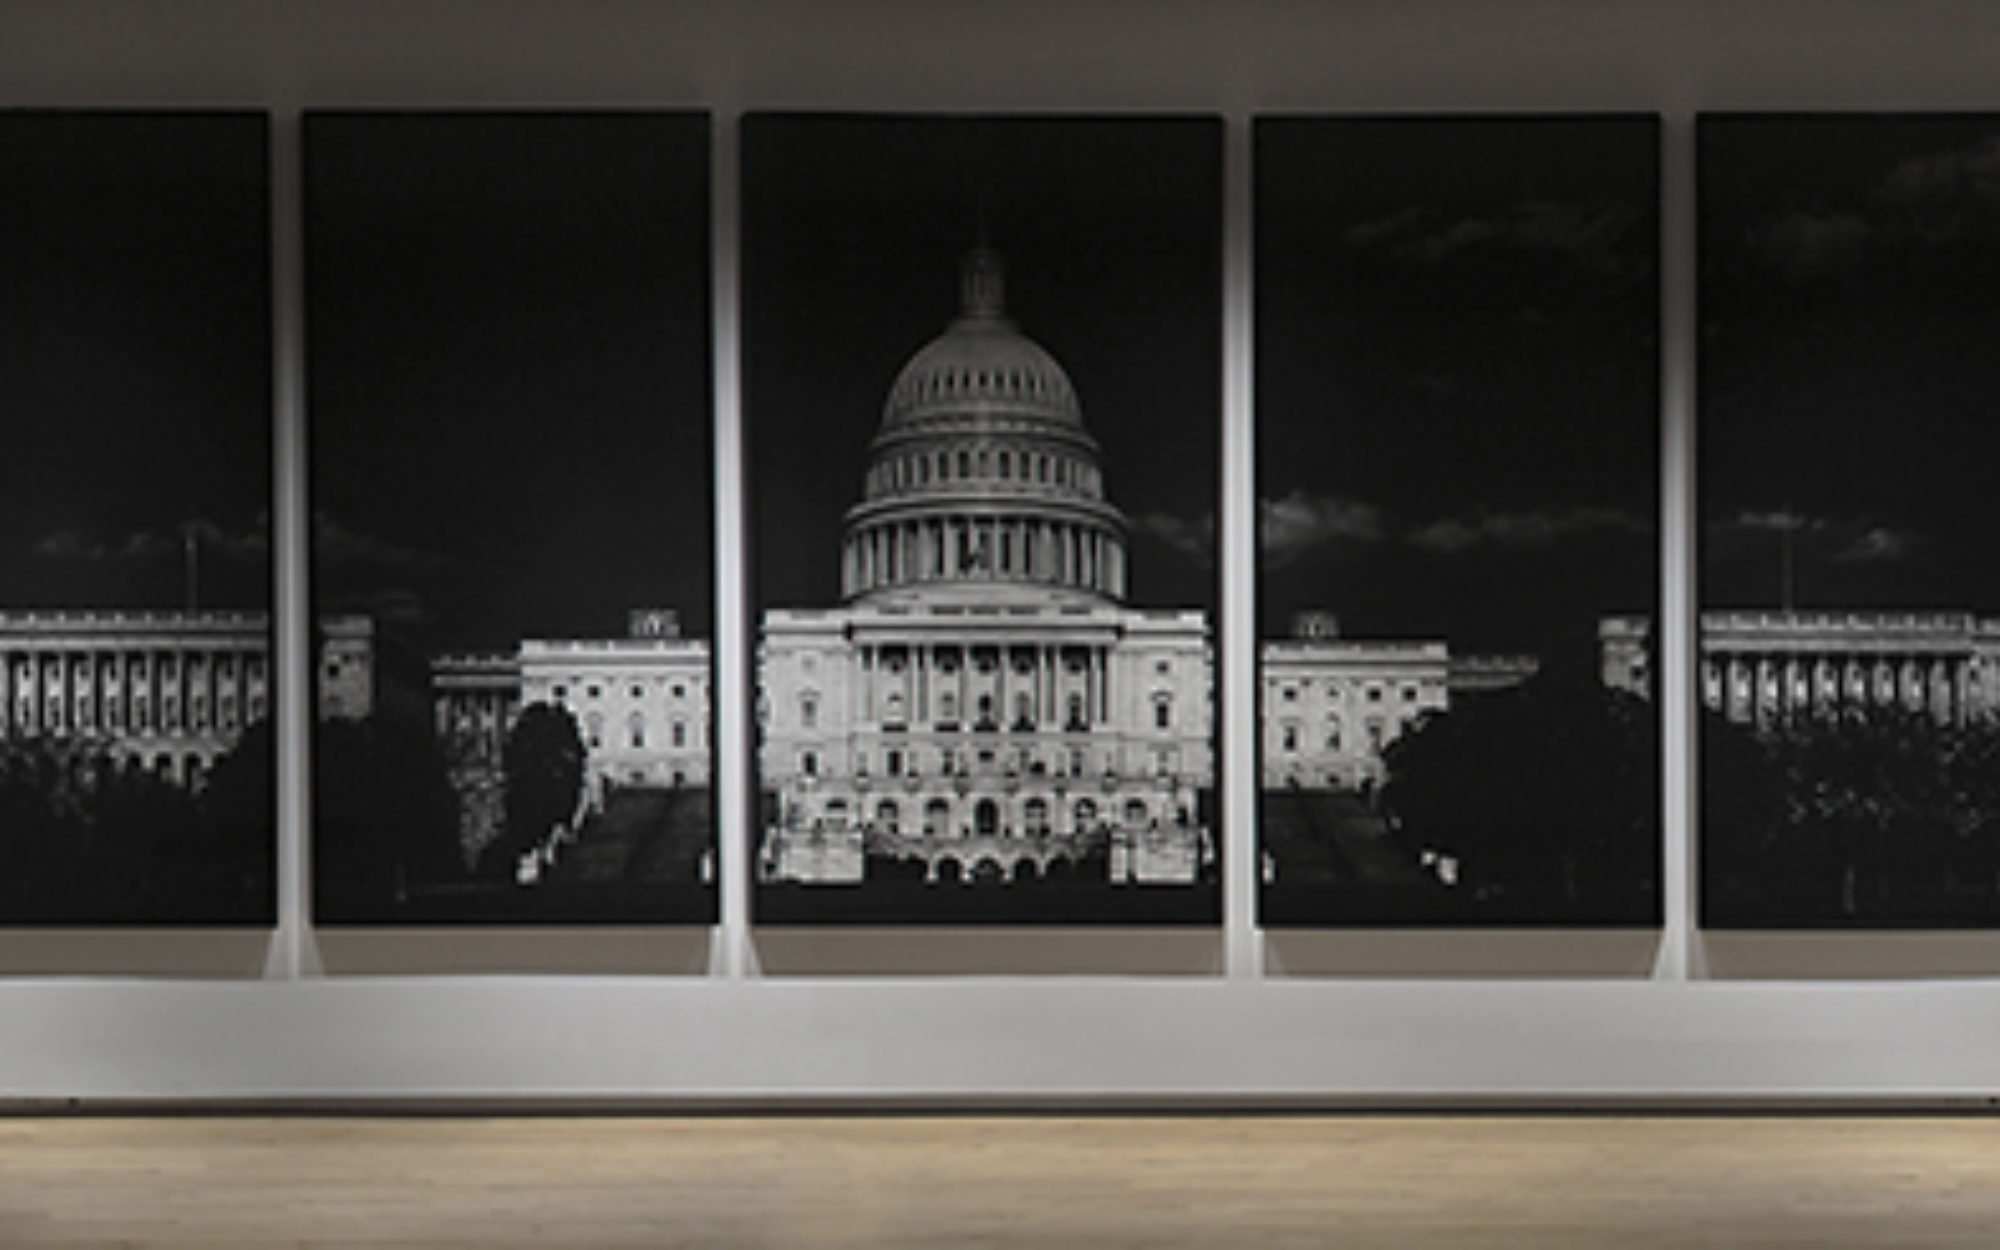 Black and white image of the United States capitol